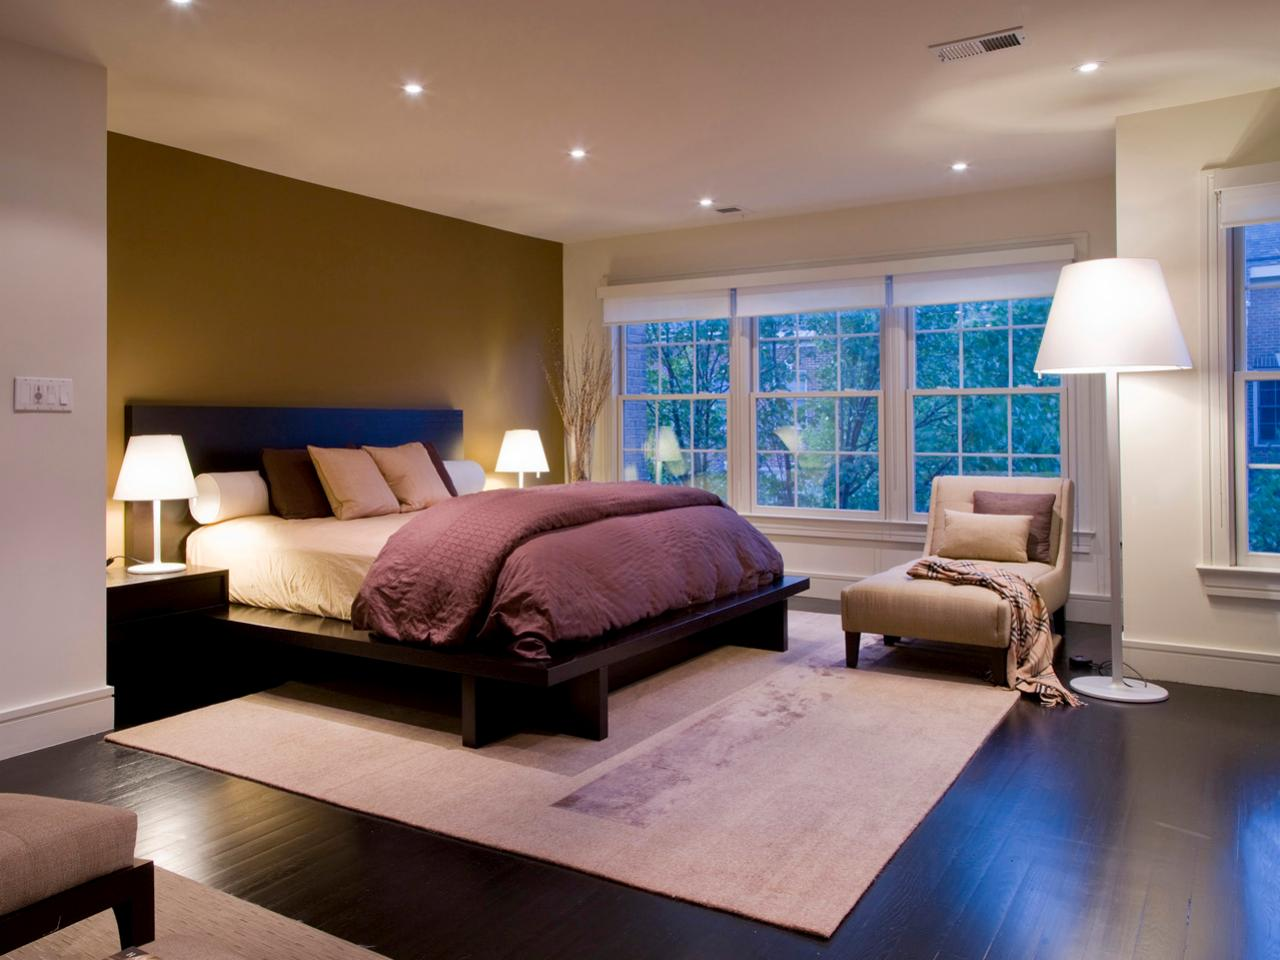 Bedroom Lighting Designs. Lighting Tips for Every Room   HGTV